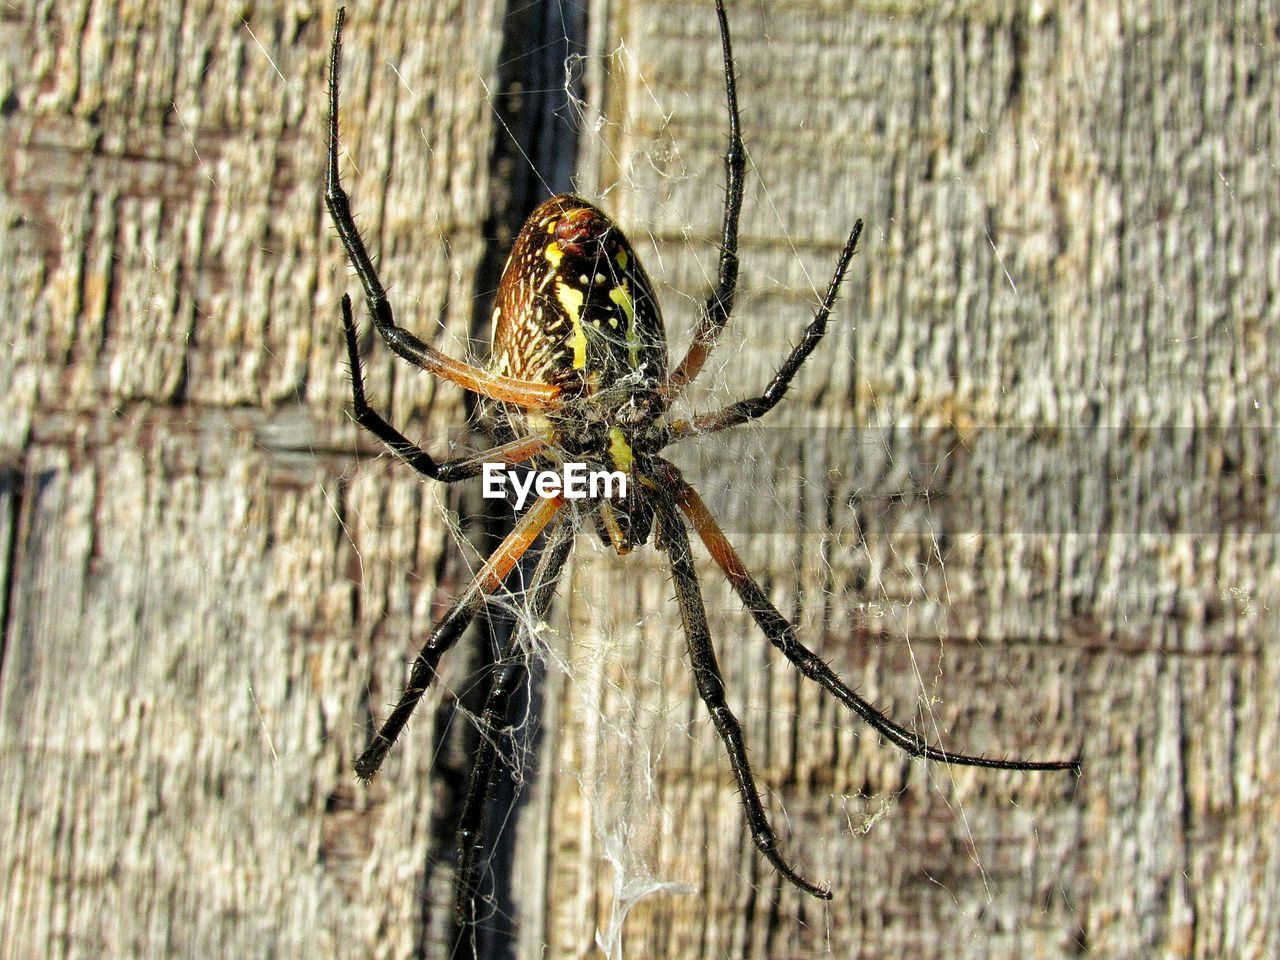 invertebrate, animals in the wild, insect, animal themes, animal wildlife, one animal, animal, close-up, day, arthropod, arachnid, no people, spider, outdoors, focus on foreground, nature, animal body part, zoology, tree, plant